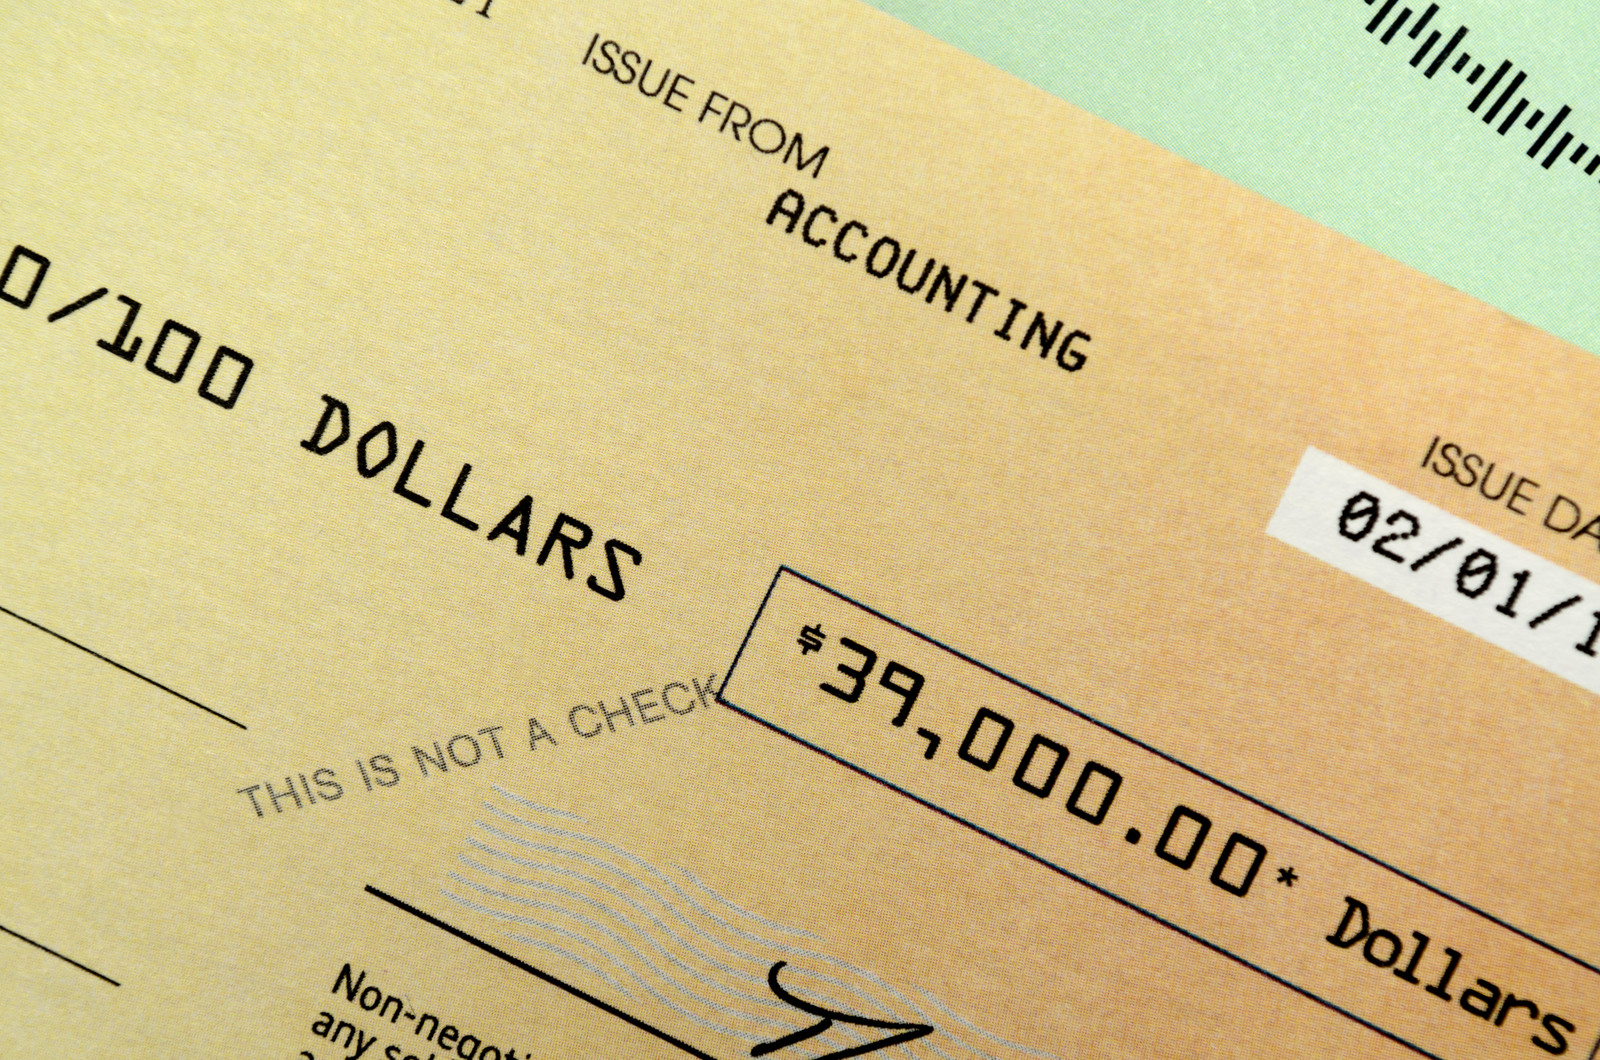 Promotional fake check for 39 thousand dollars